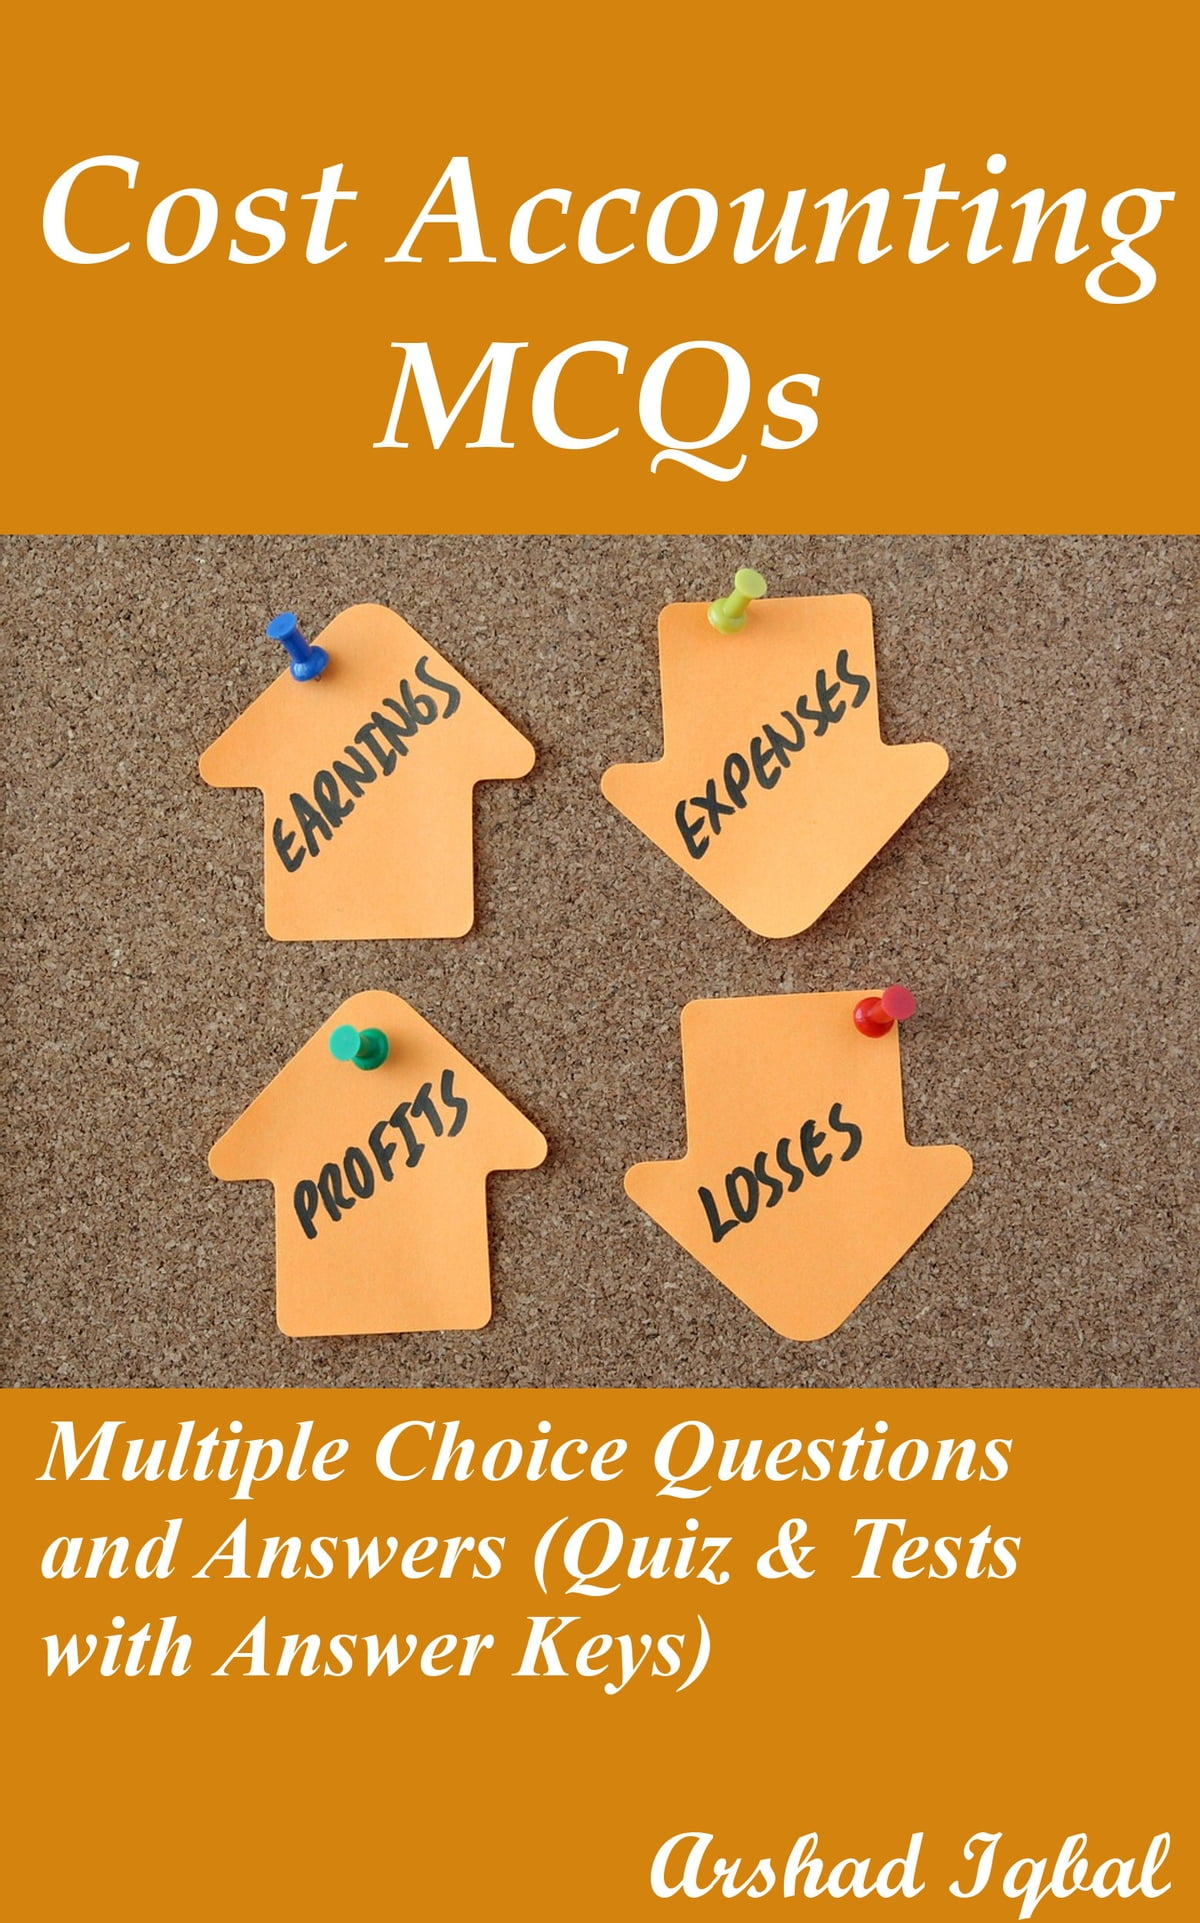 Human resource management mcqs multiple choice questions and cost accounting mcqs multiple choice questions and answers quiz tests with answer keys fandeluxe Gallery